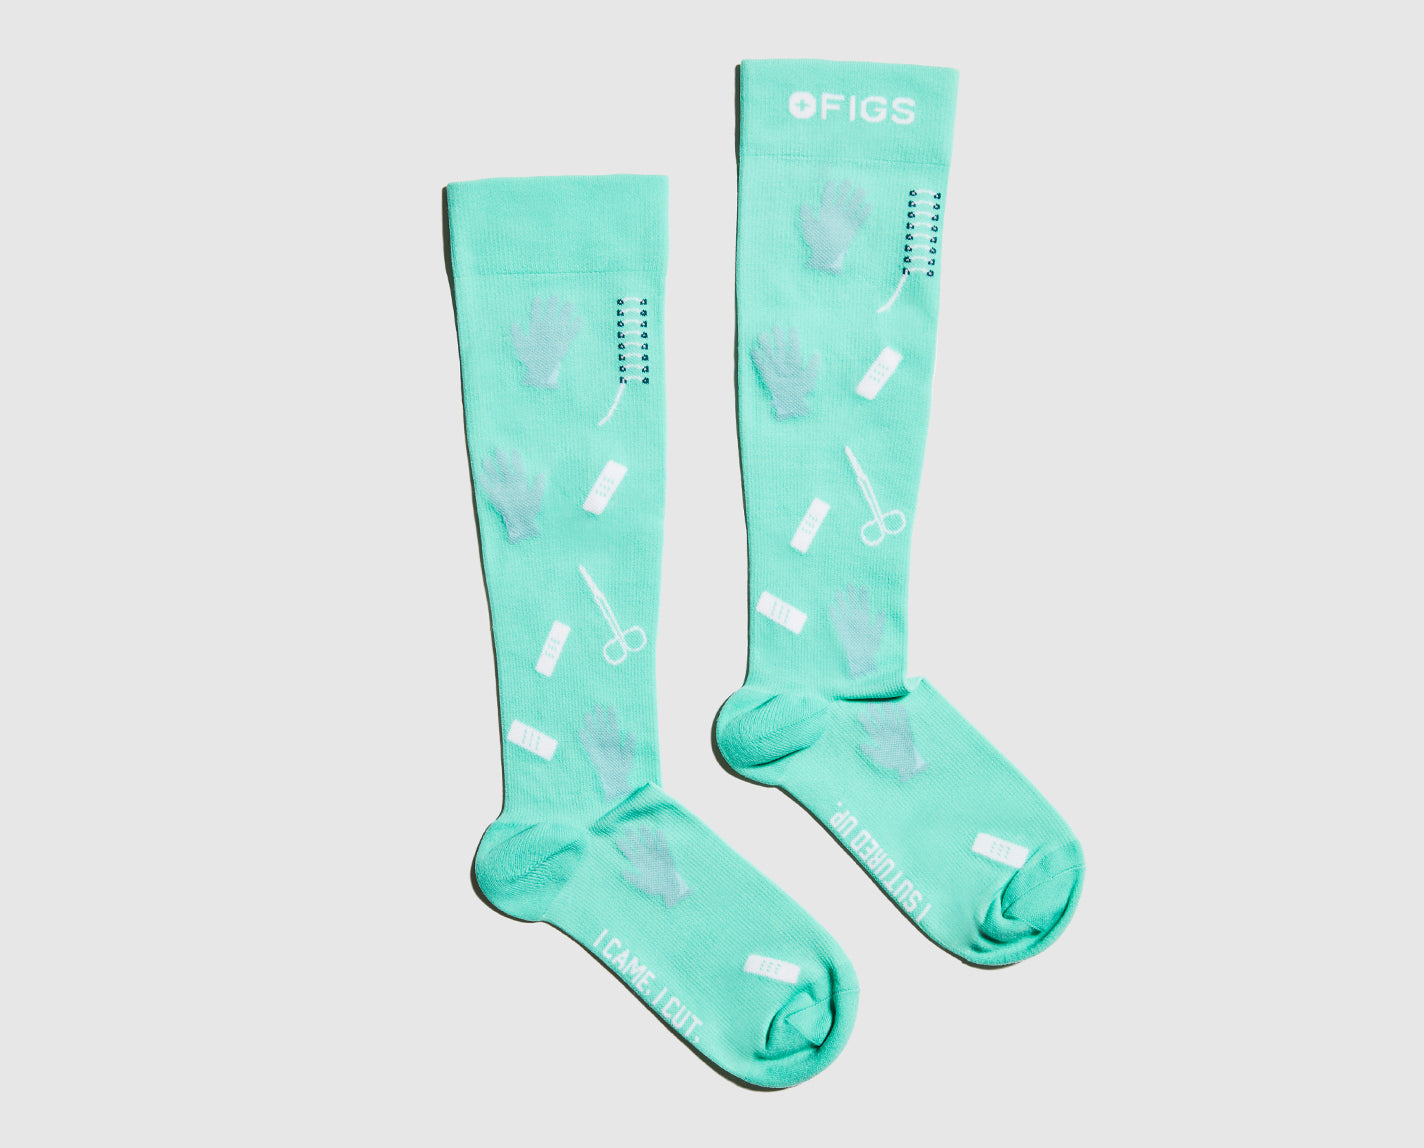 Don't forget to wear your socks. Our 100% Awesome Compression Socks help relieve tired and achy legs. They're also breathable and ridiculously soft.